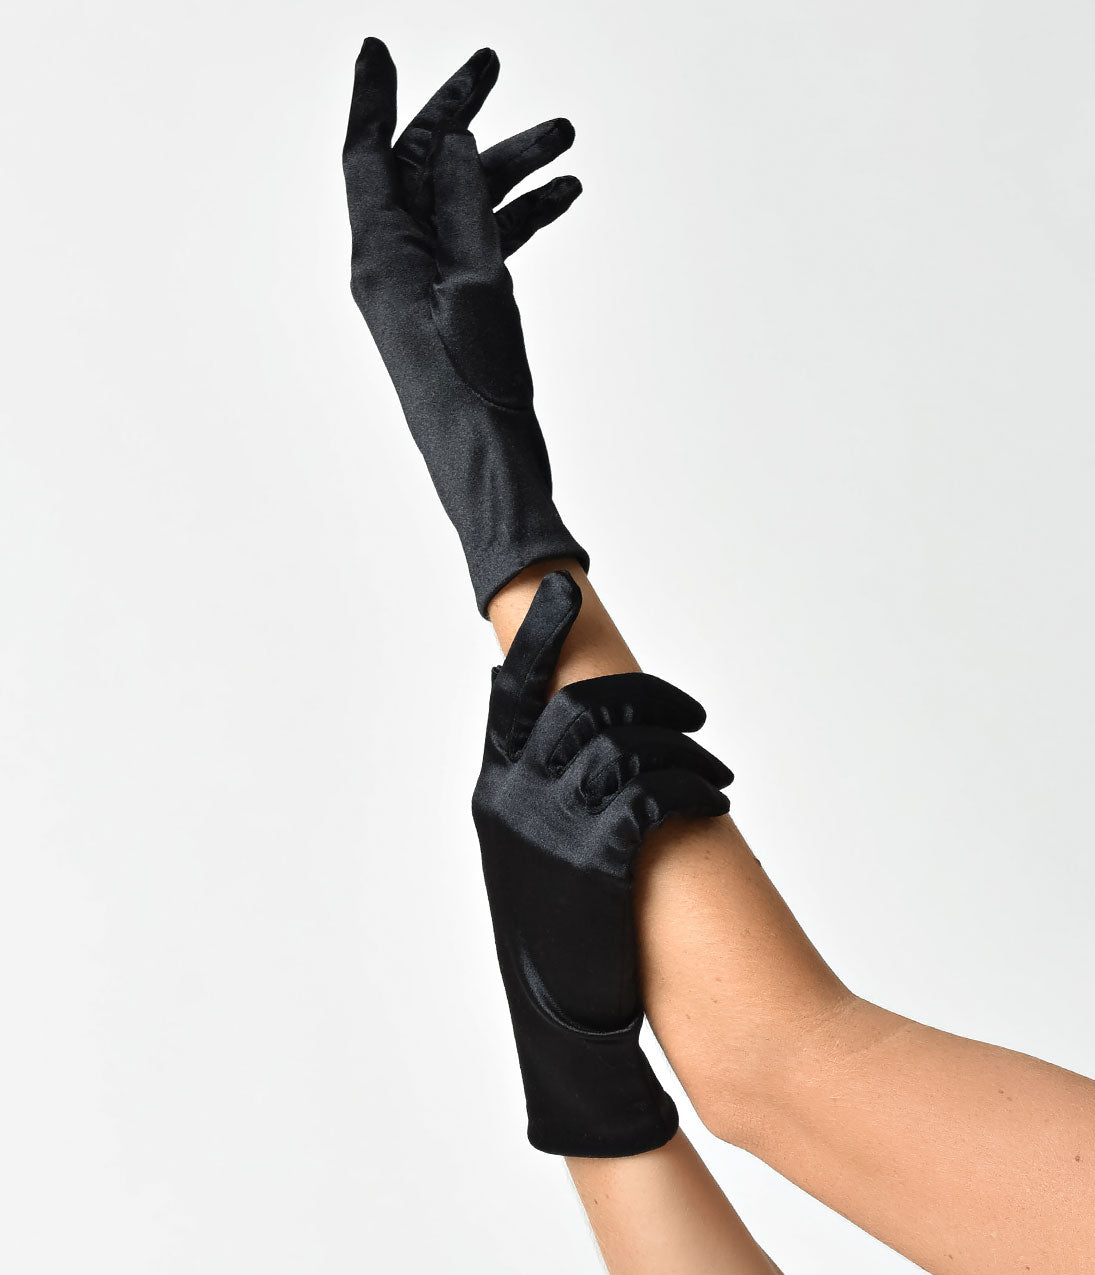 Victorian Gloves | Victorian Accessories Vintage Style Black Satin Wrist Gloves $14.00 AT vintagedancer.com